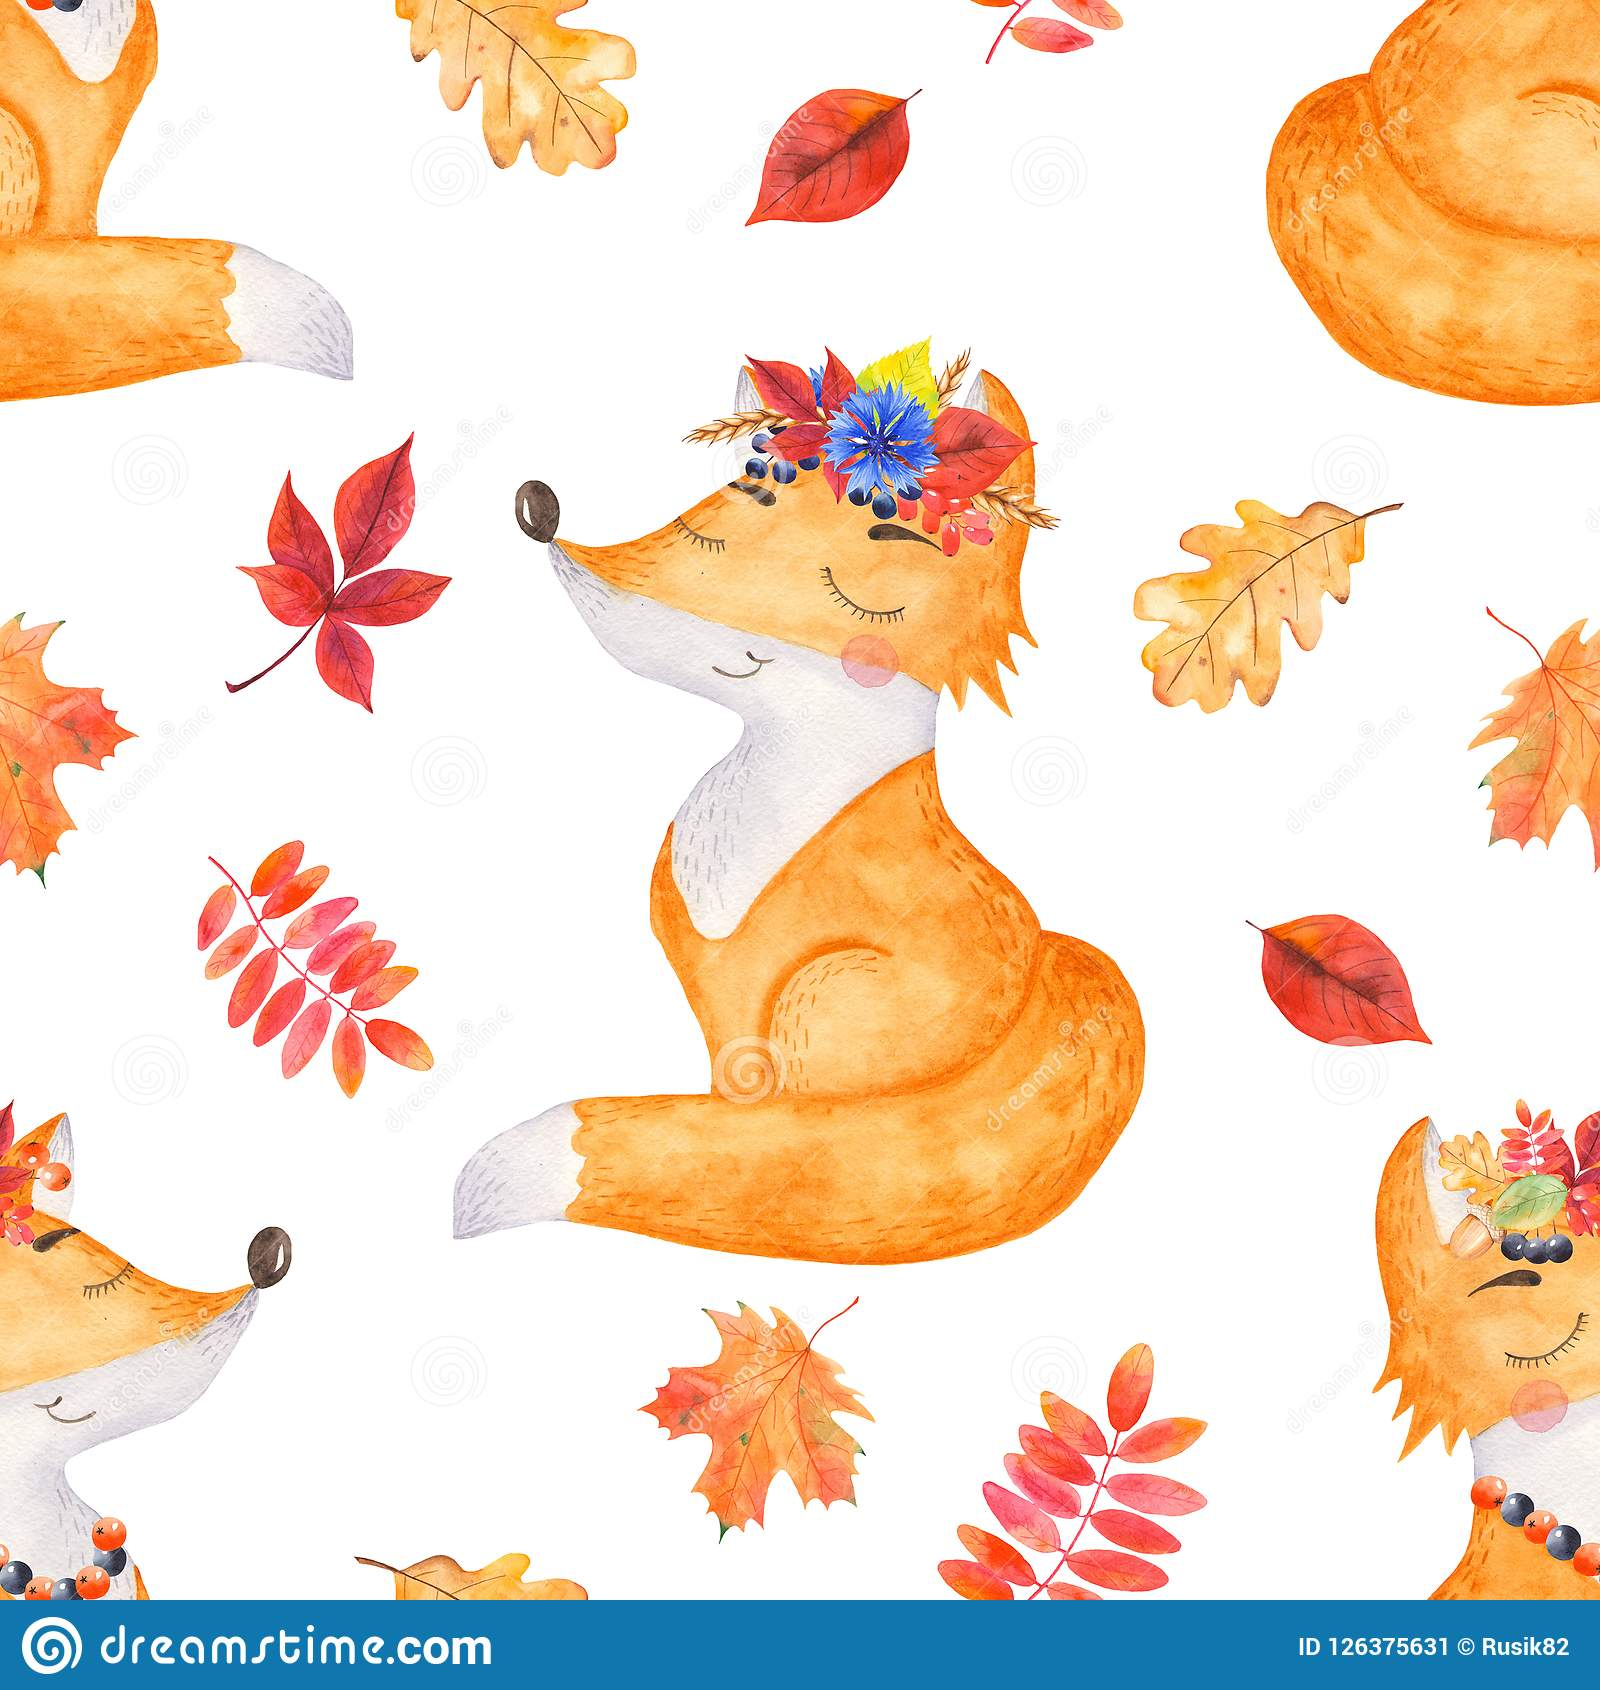 Watercolor Seamless Pattern With Autumn Leaves And A Cute Cartoon Fox Stock Illustration Illustration Of Childrens Design 126375631